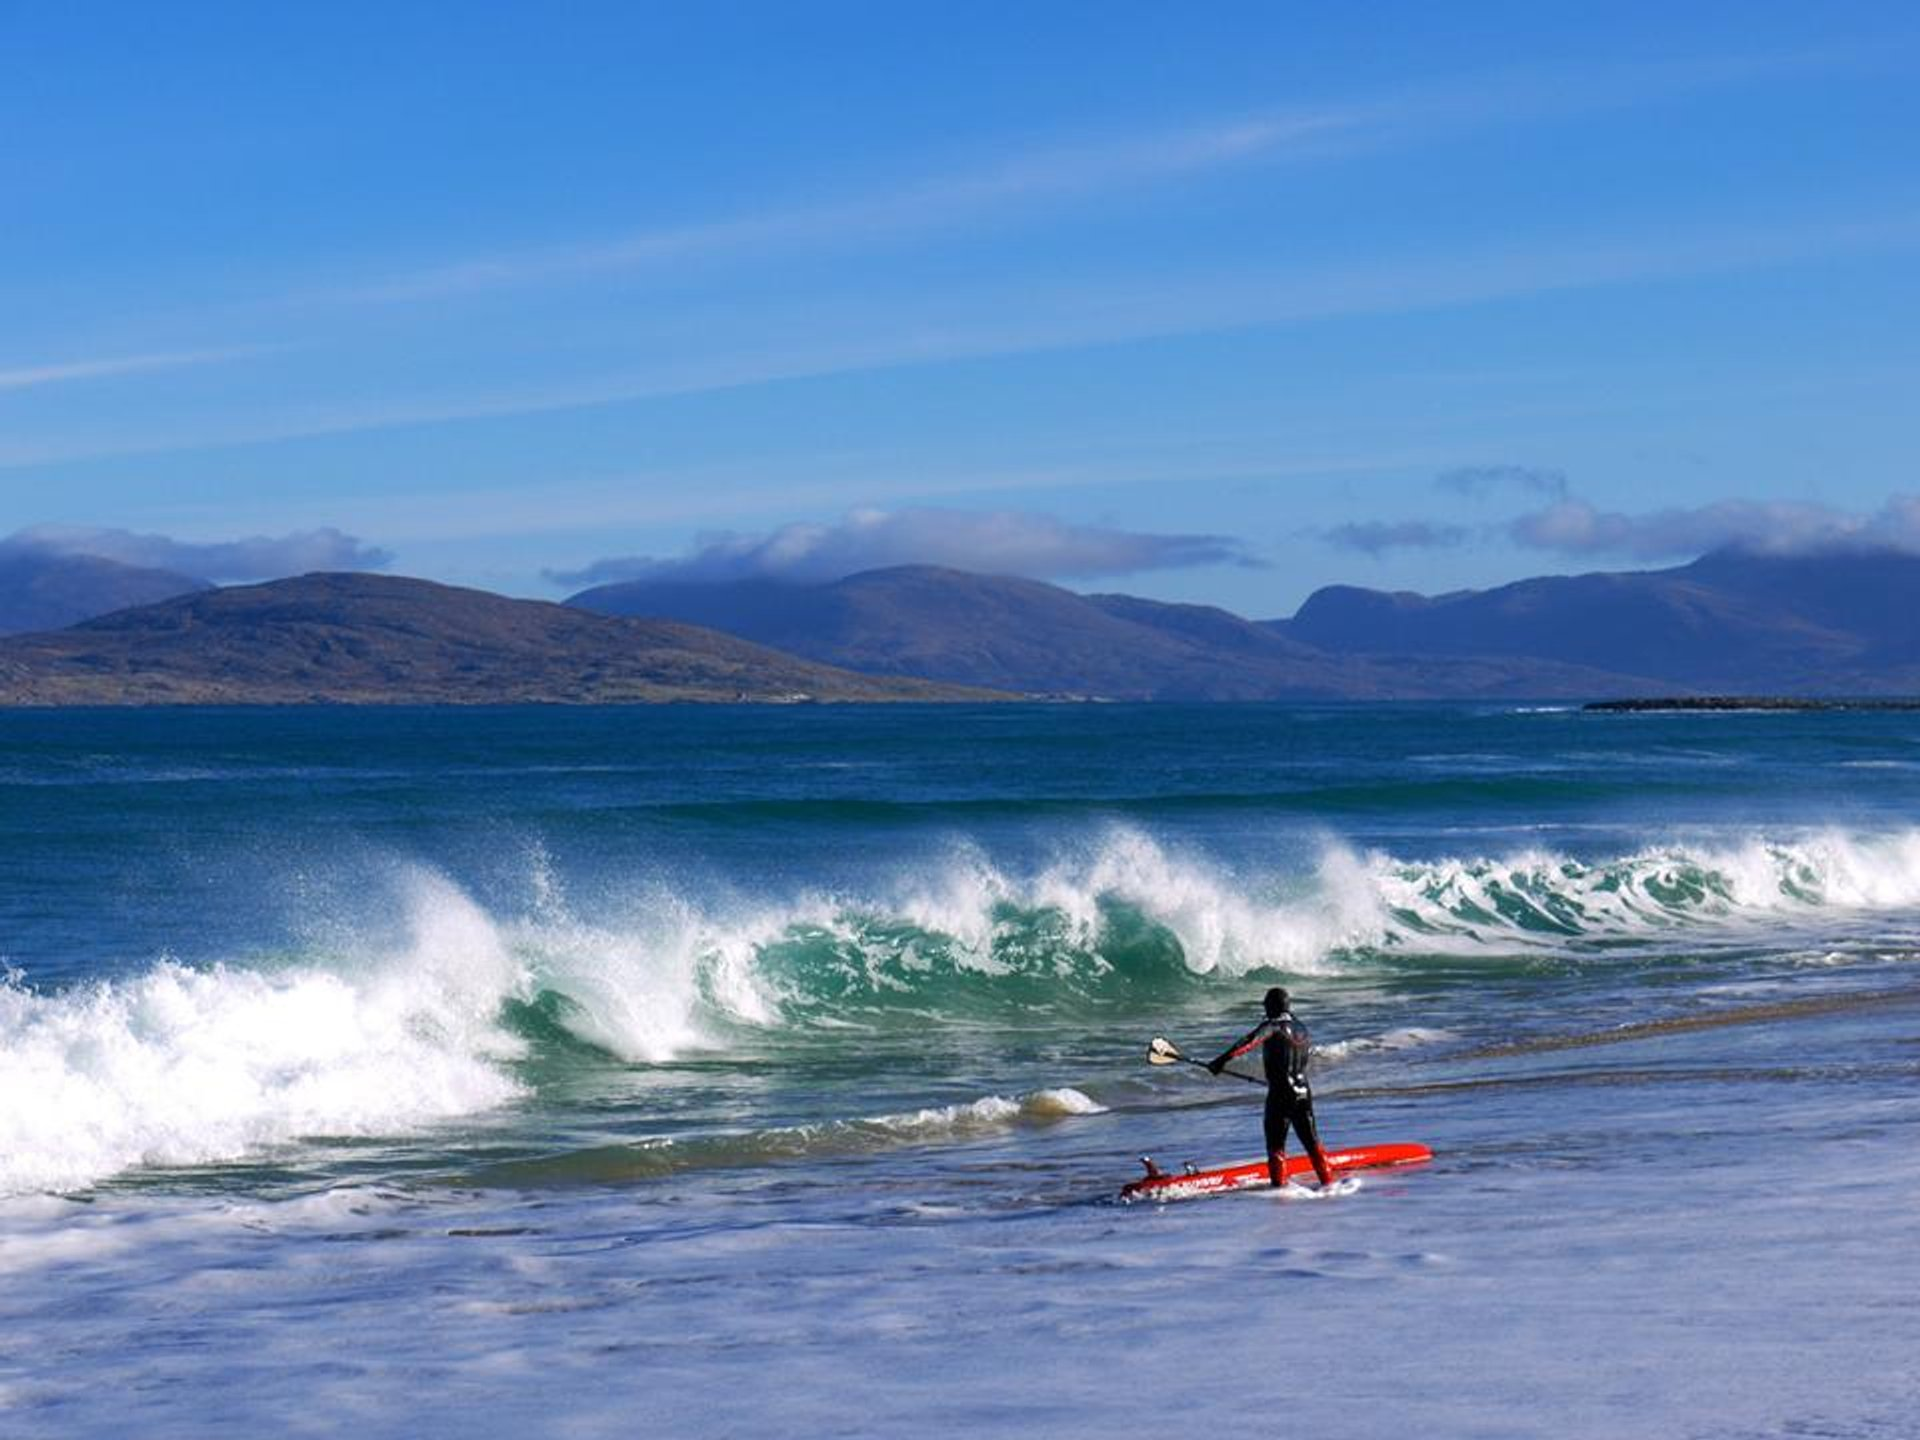 SUP Surfing at Scarista Beach, Isle of Harris, Outer Hebrides  2020